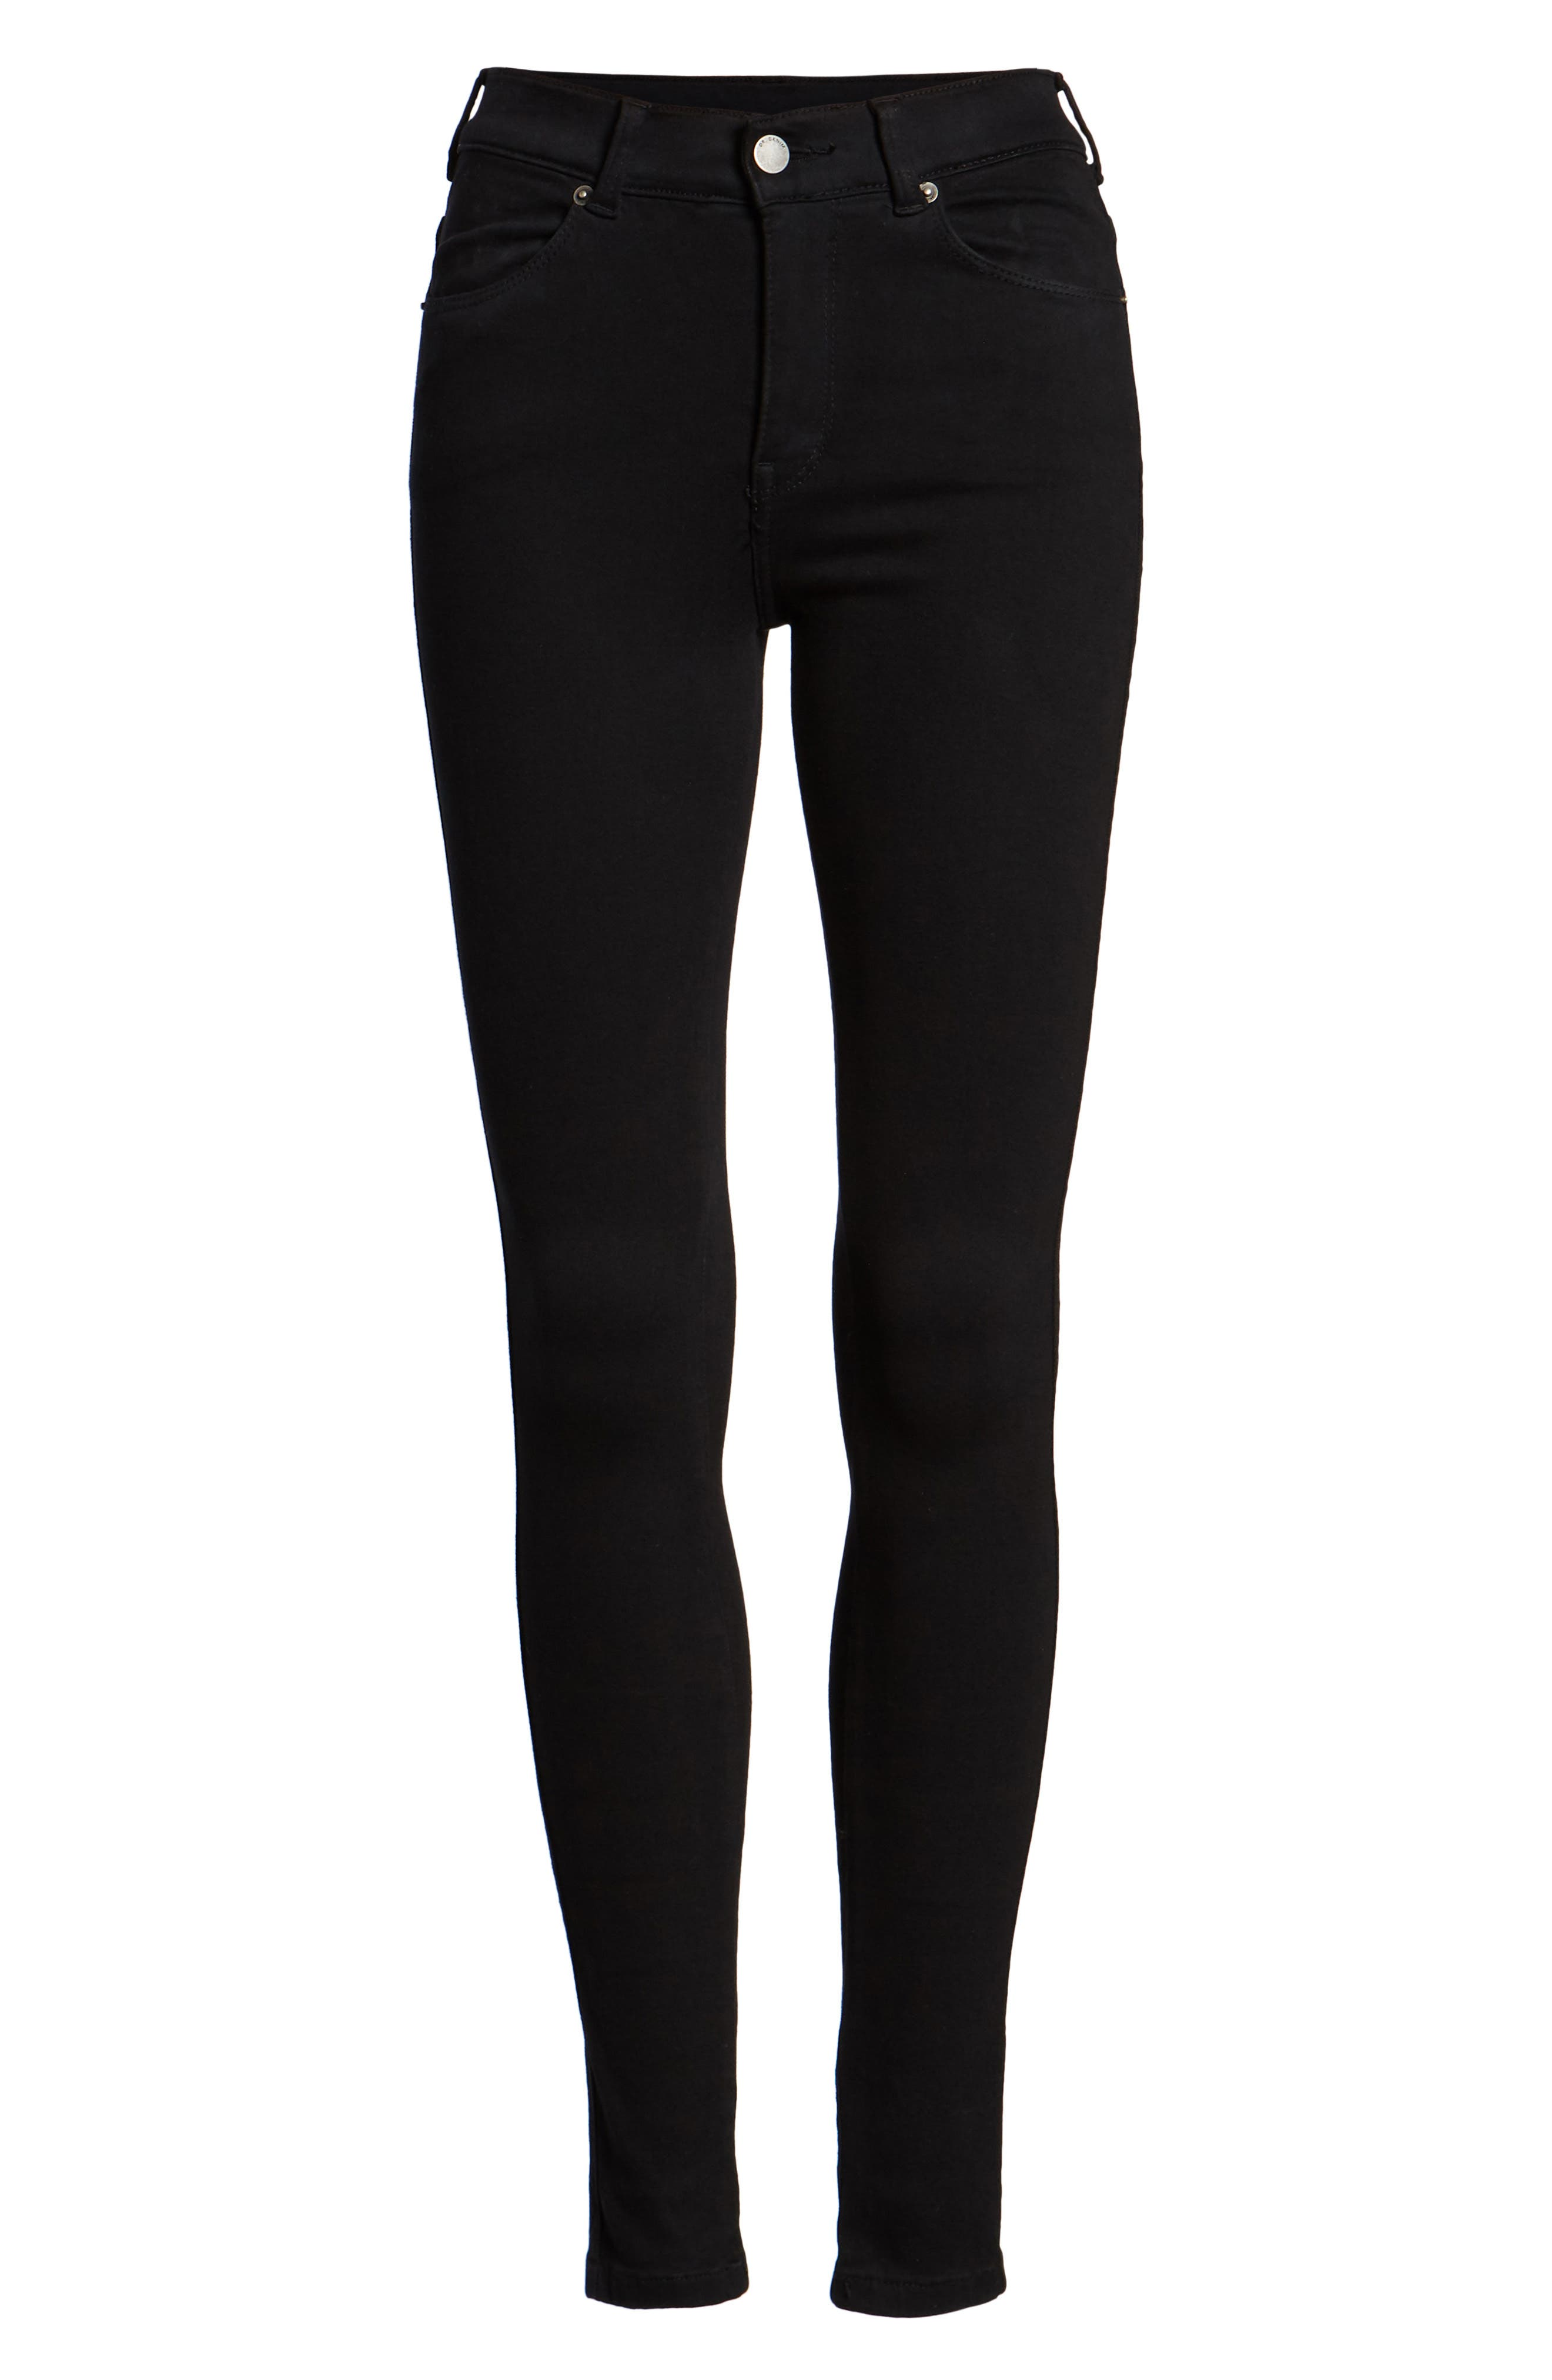 Lexy Skinny Jeans,                             Alternate thumbnail 7, color,                             001